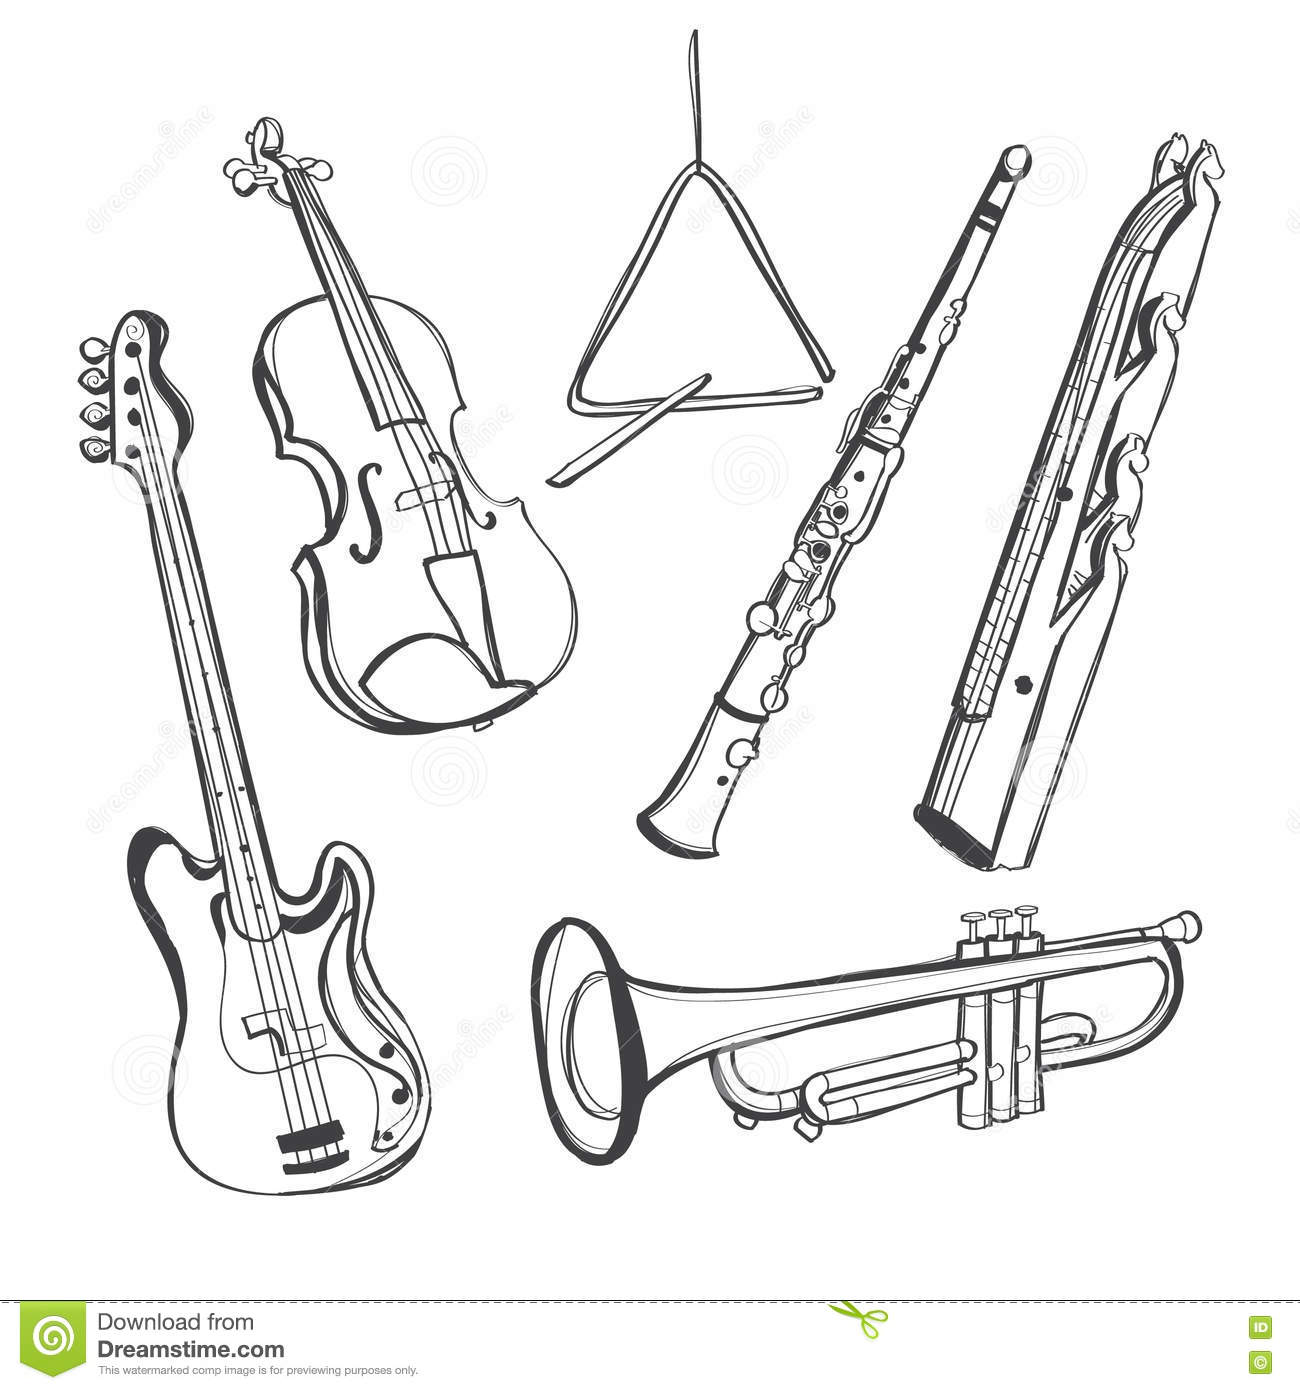 brass family instruments coloring pages - photo#17